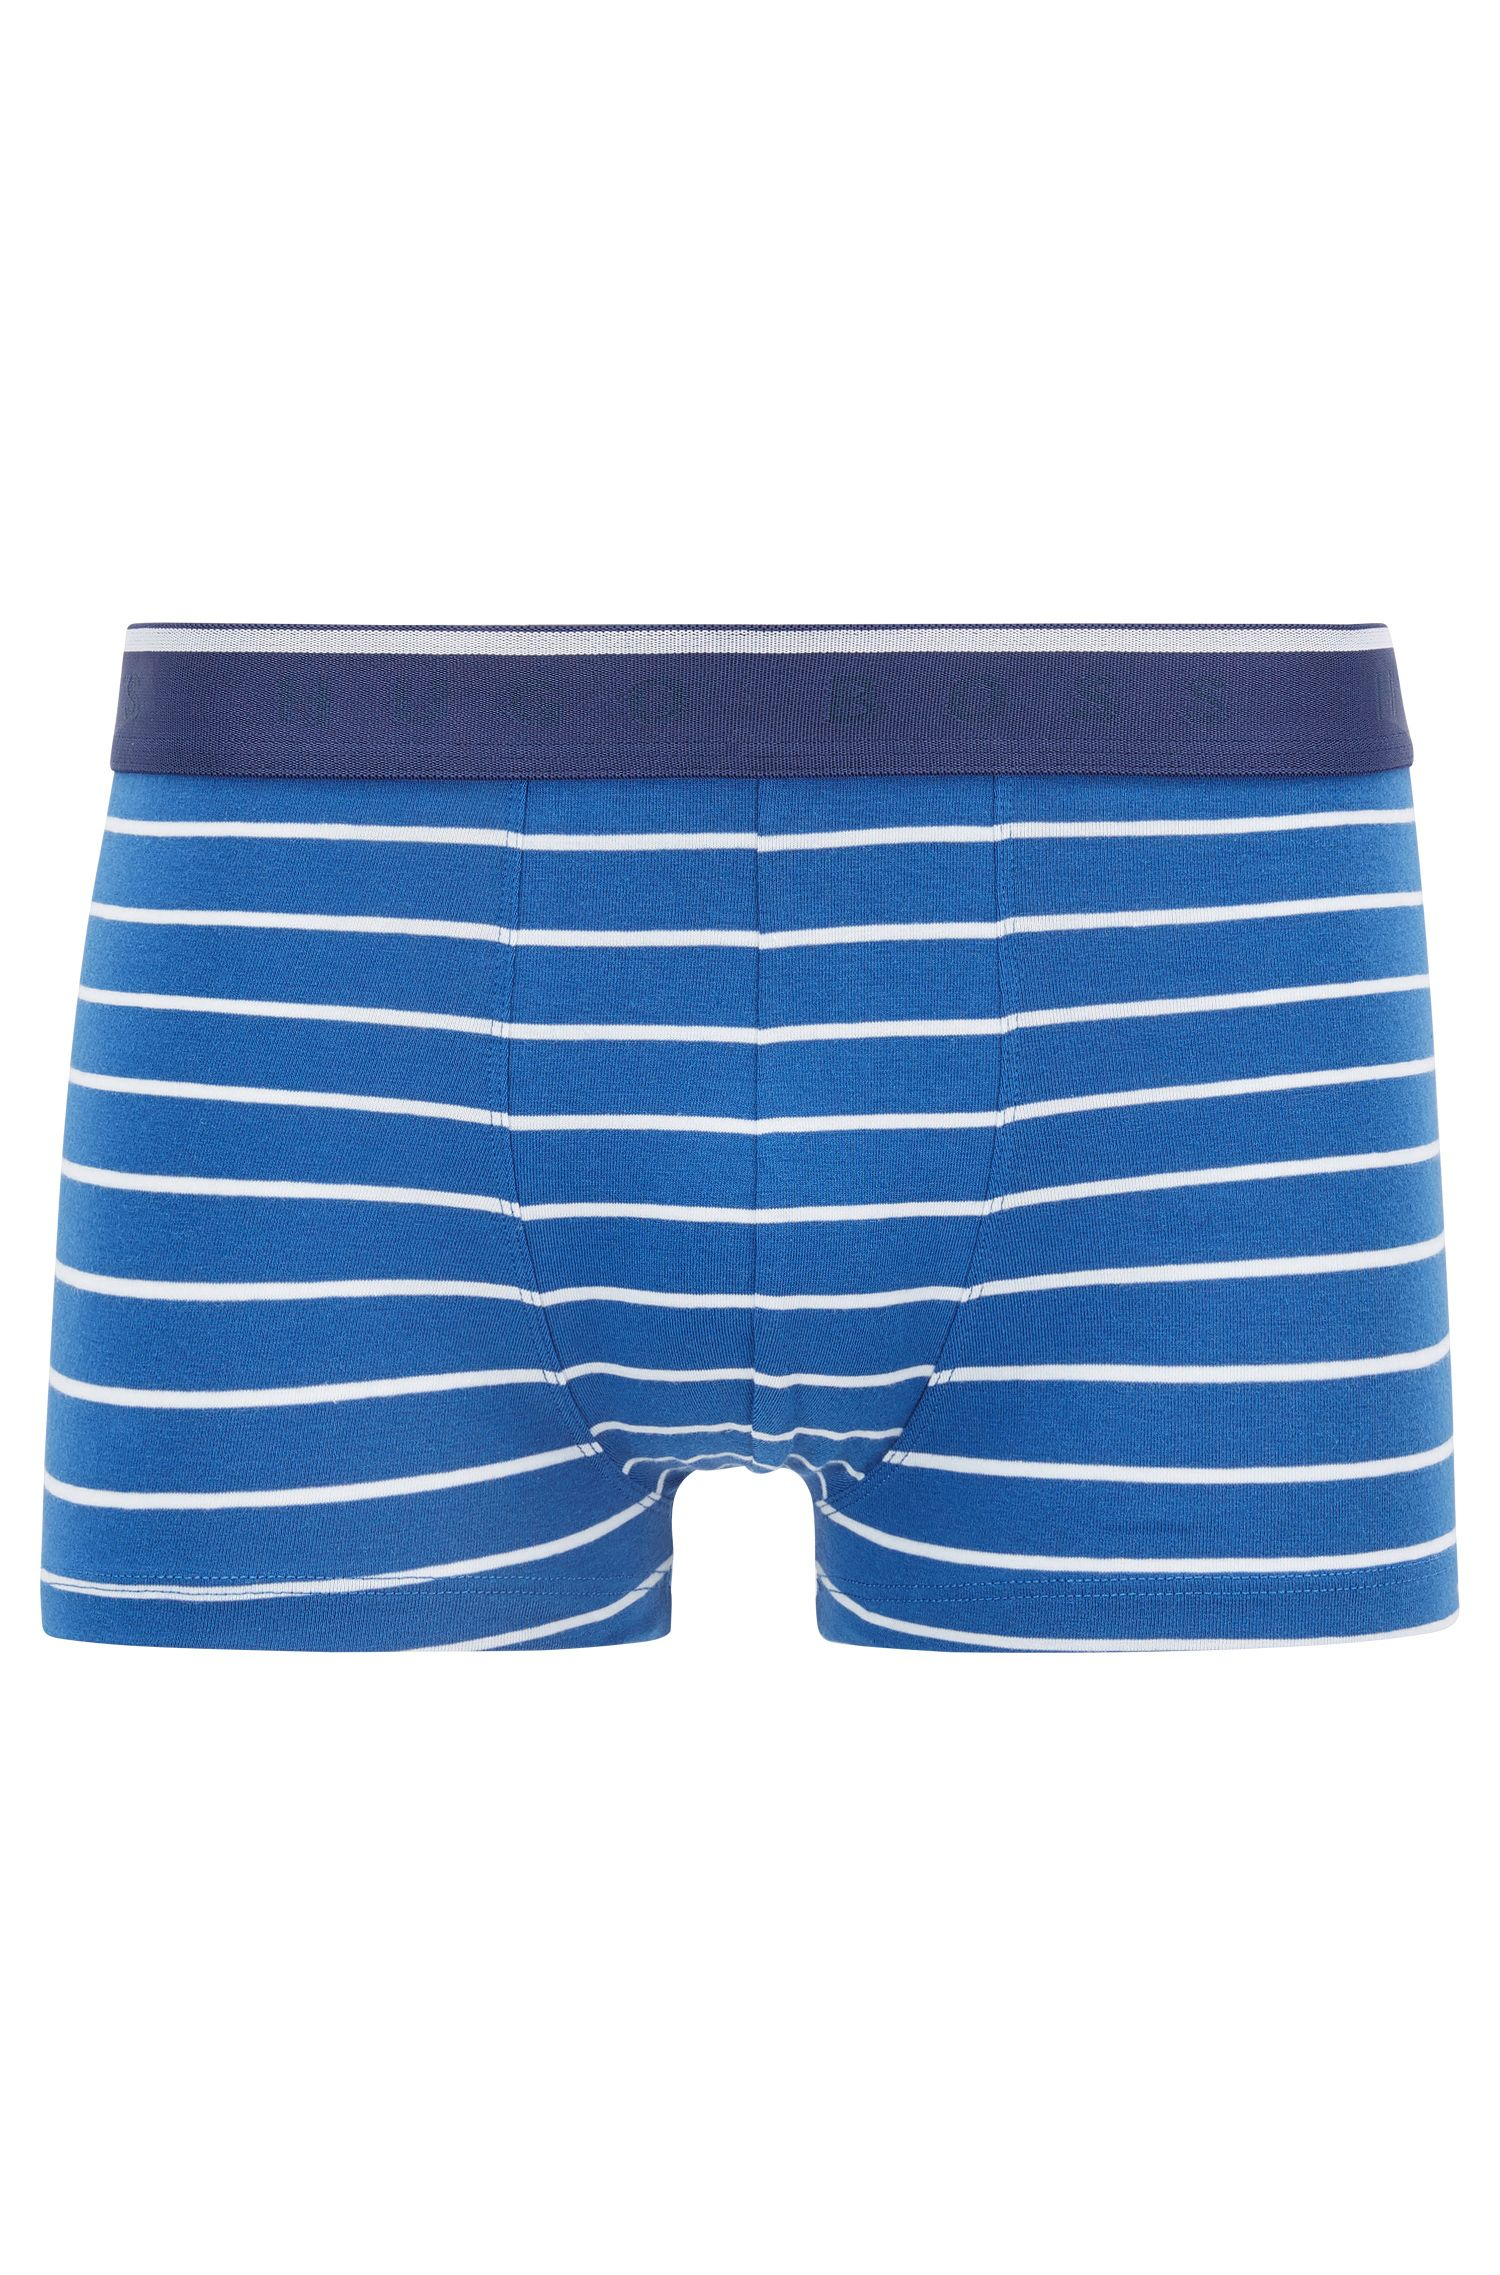 Regular-rise boxer briefs in stretch cotton jersey, Open Blue